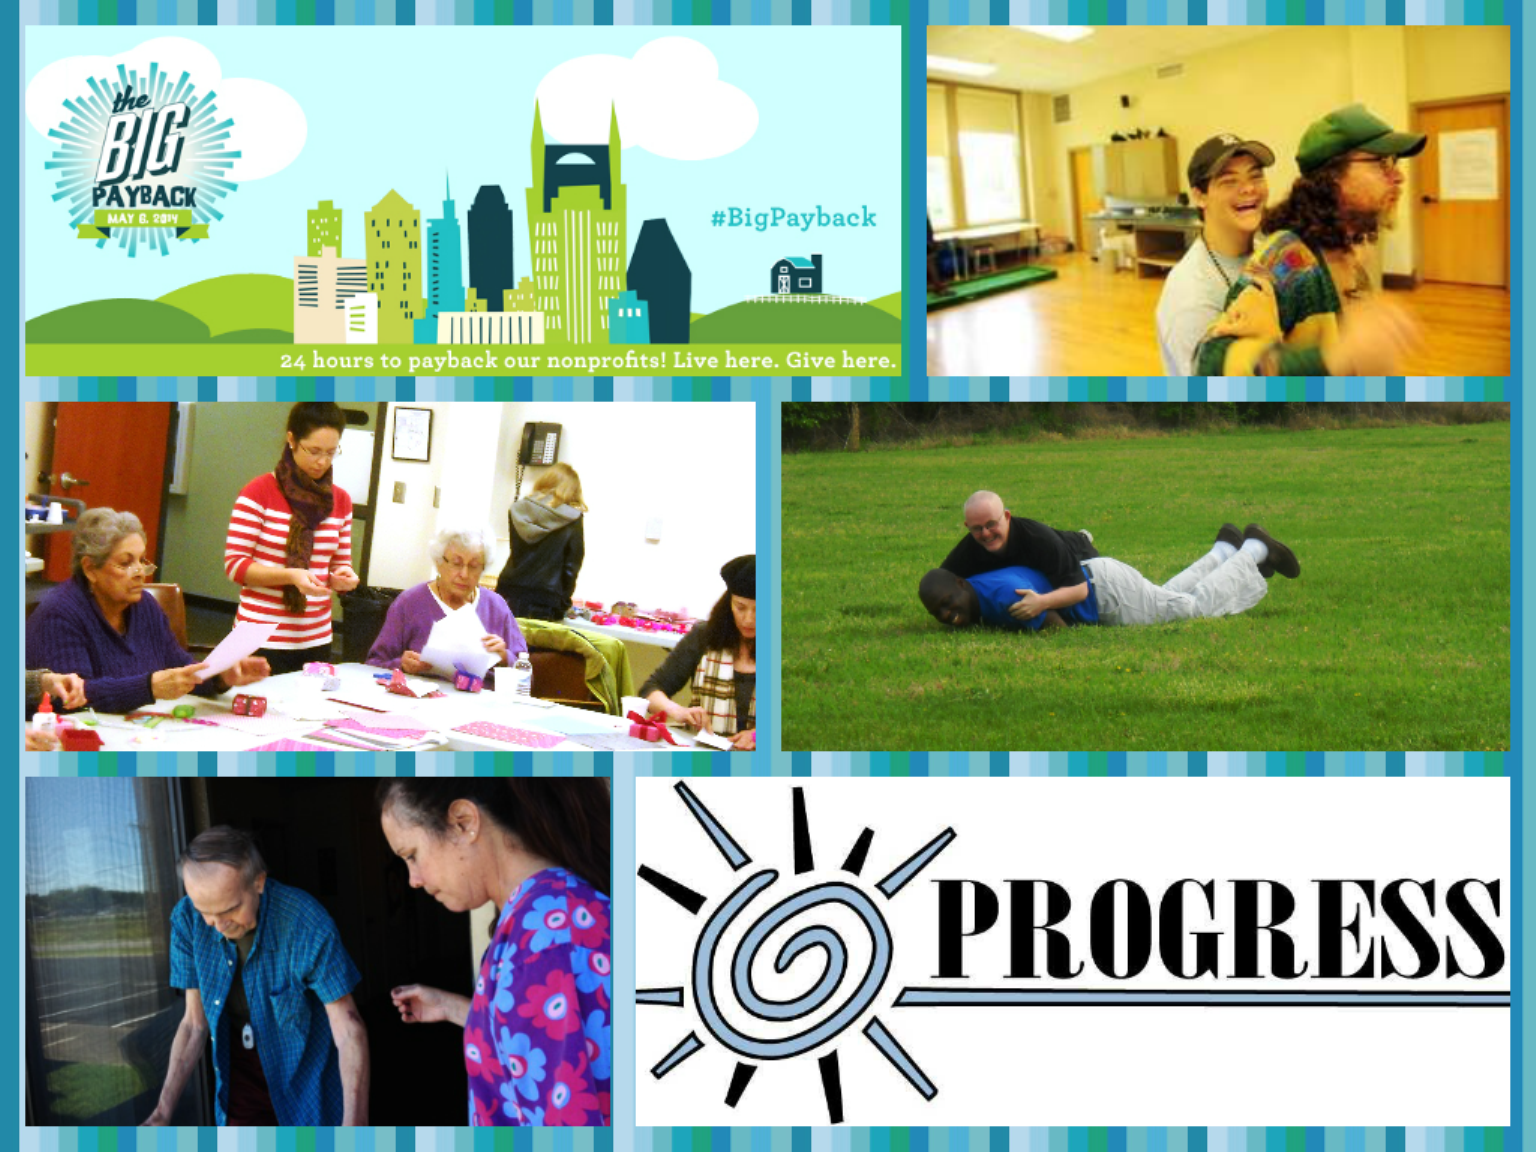 Community Foundation, Progress Inc., BigPayback, Seniors, Disability